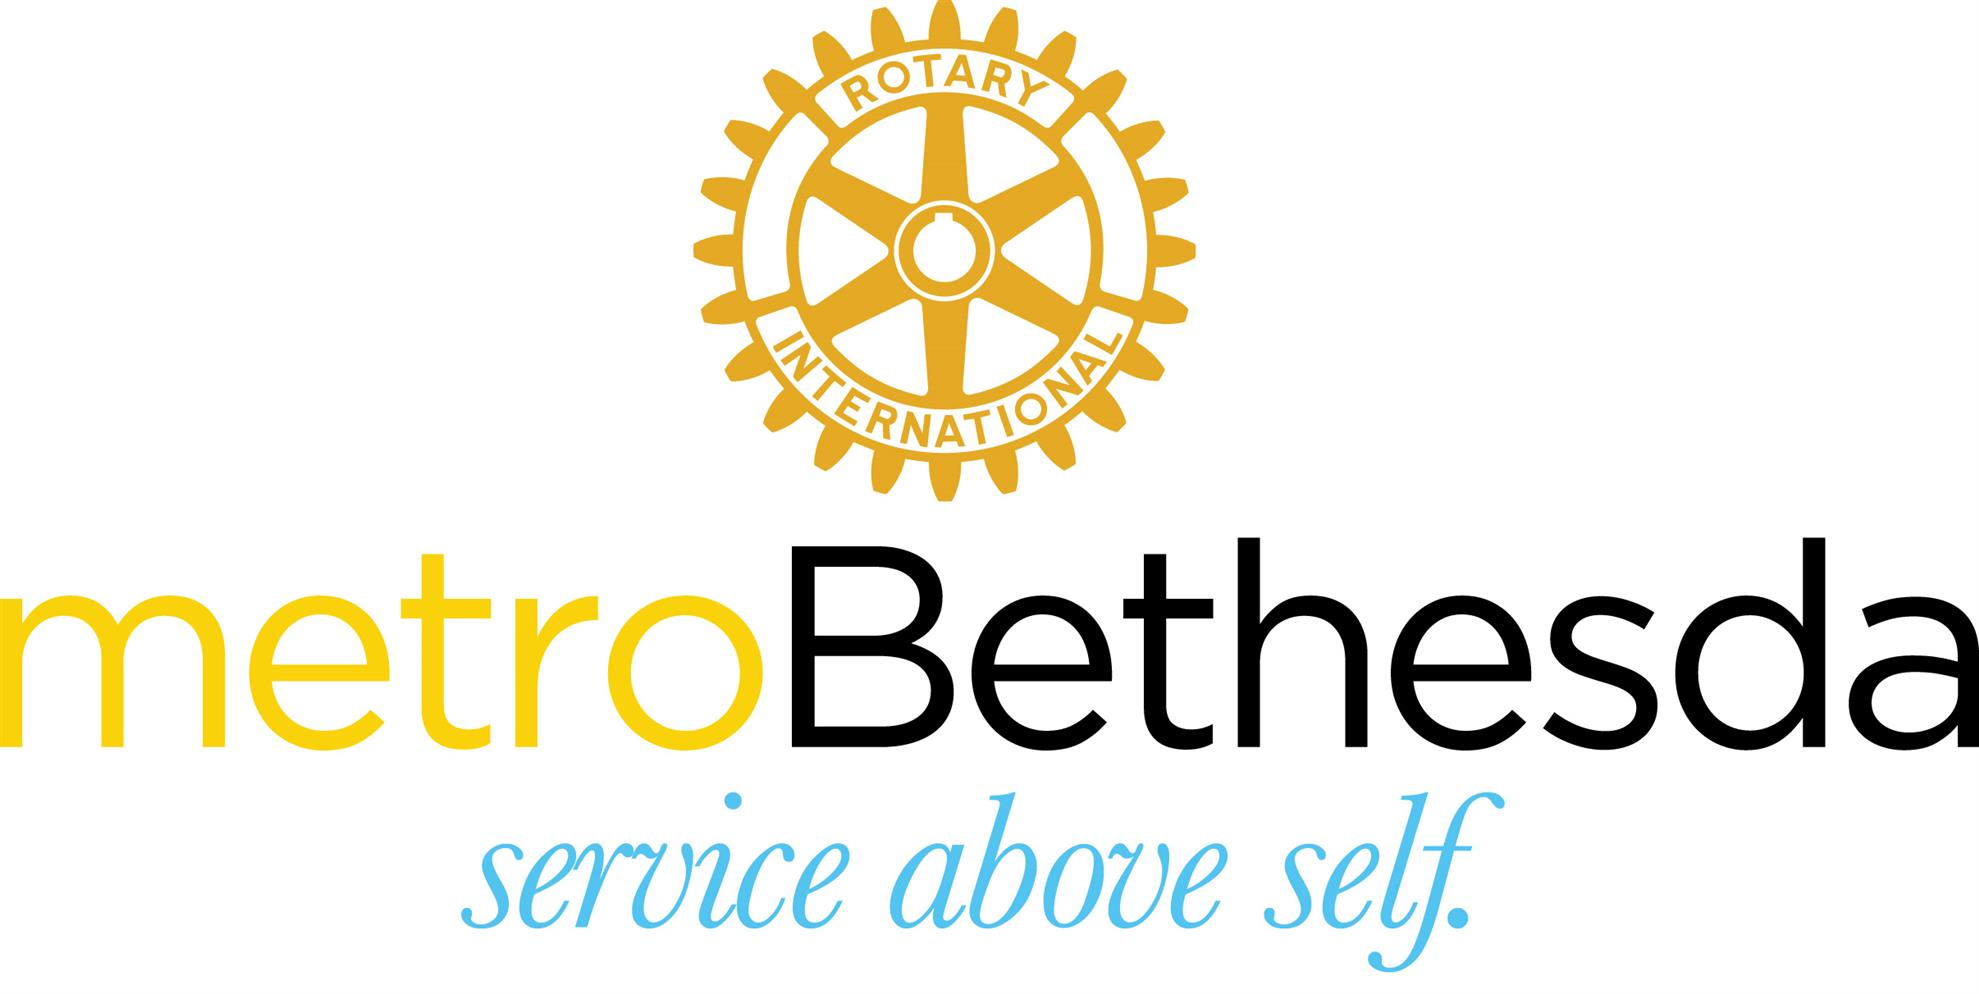 home page | rotary club of metro bethesda